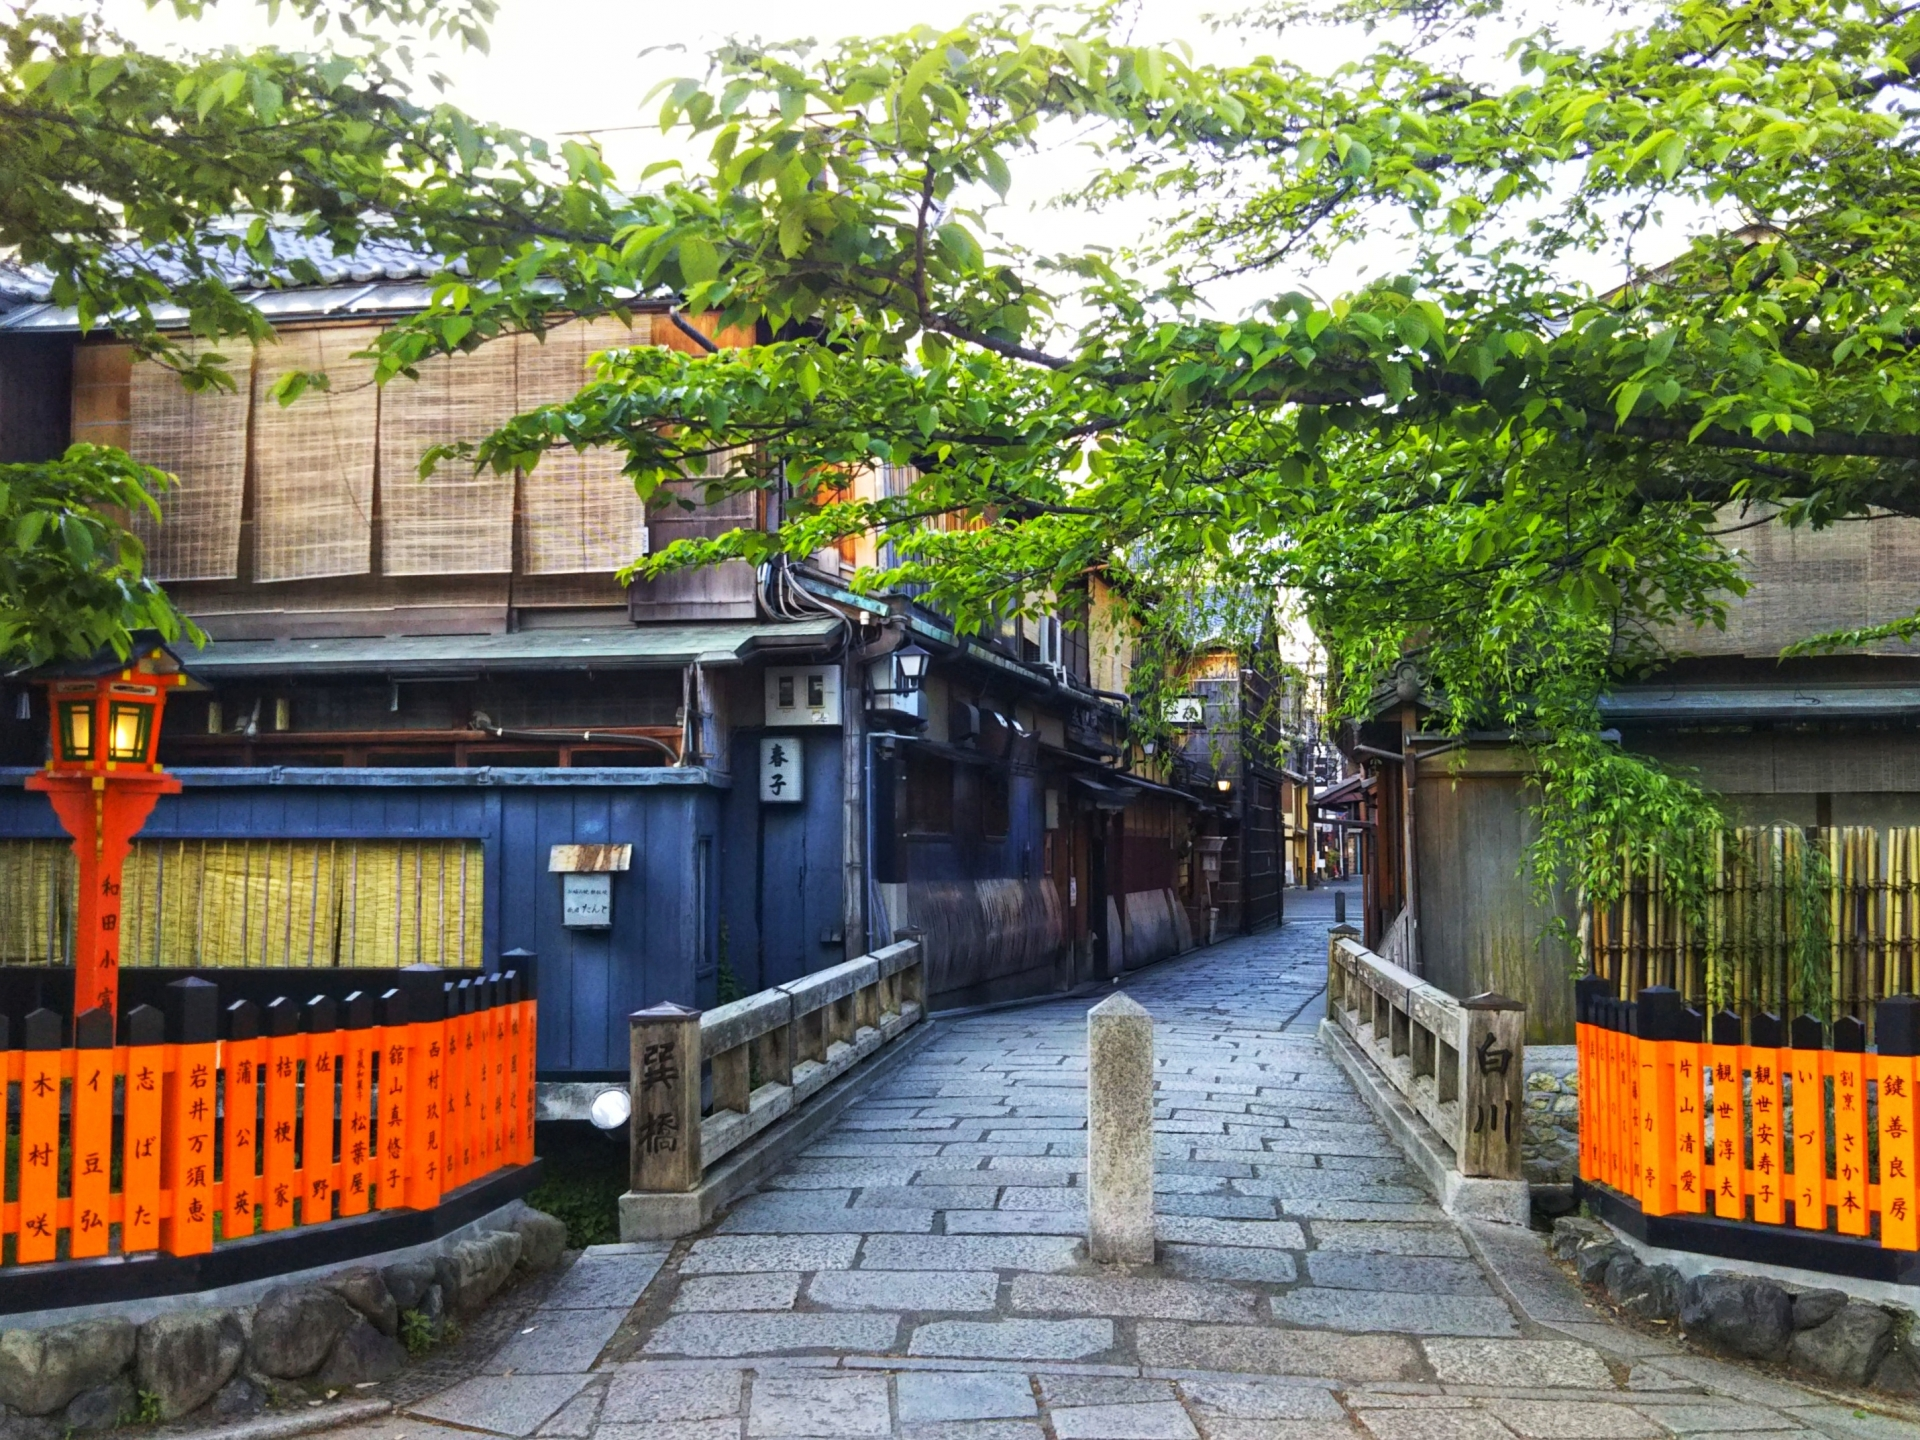 [07] Virtual Tour of Kyoto Gion Area in Japan <Live Streaming>